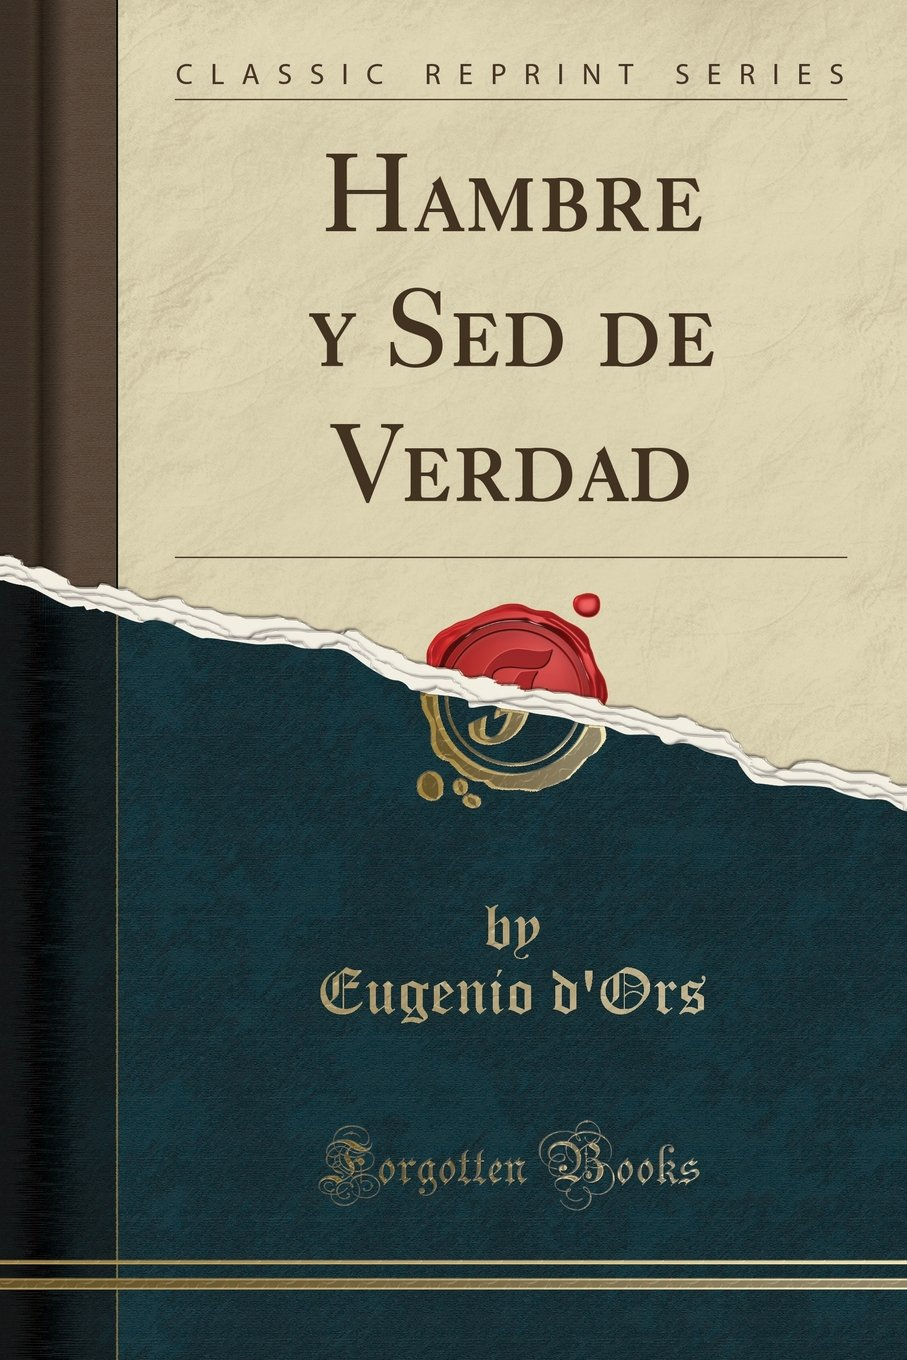 Hambre y Sed de Verdad (Classic Reprint) (Spanish Edition): Eugenio dOrs: 9780428303341: Amazon.com: Books